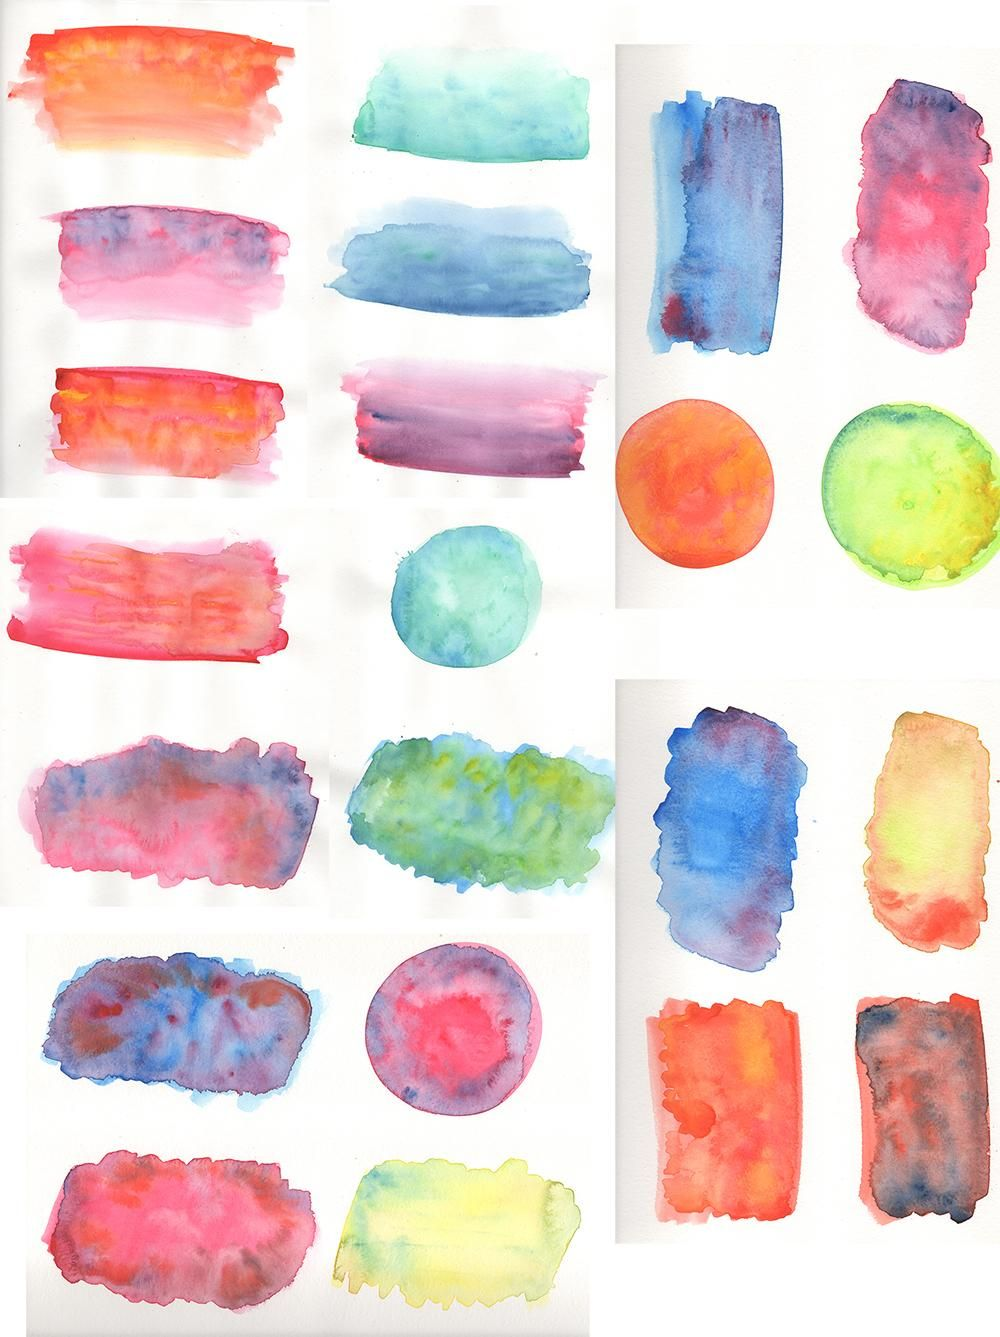 Watercolour textures - image 1 - student project